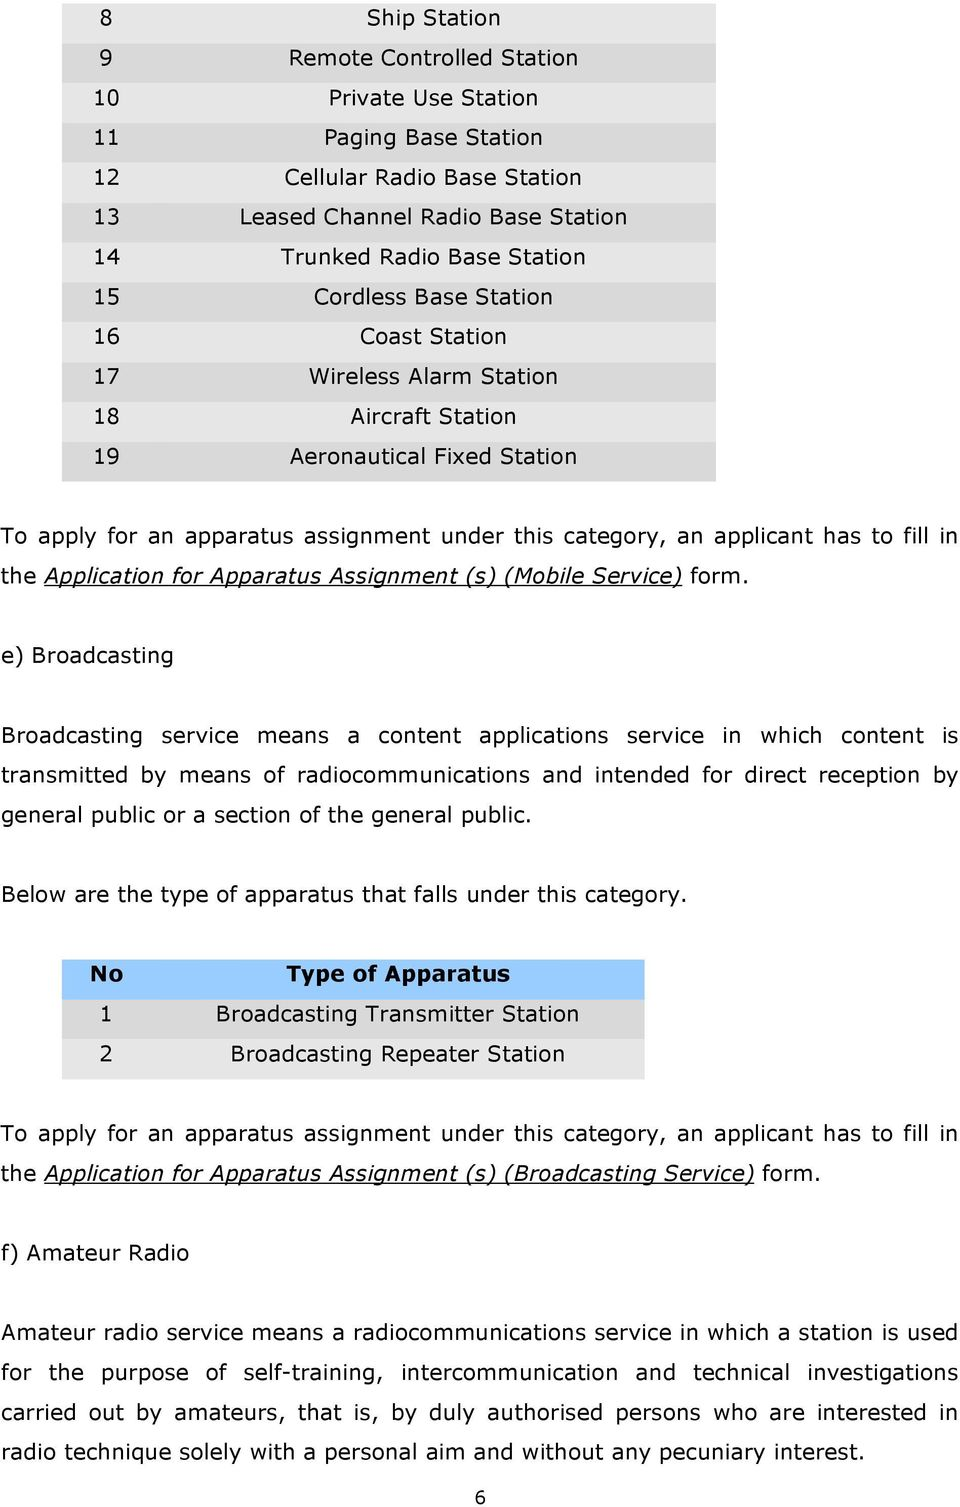 GUIDELINE FOR APPARATUS ASSIGNMENT  20 May 2009 (SKMM/G/01